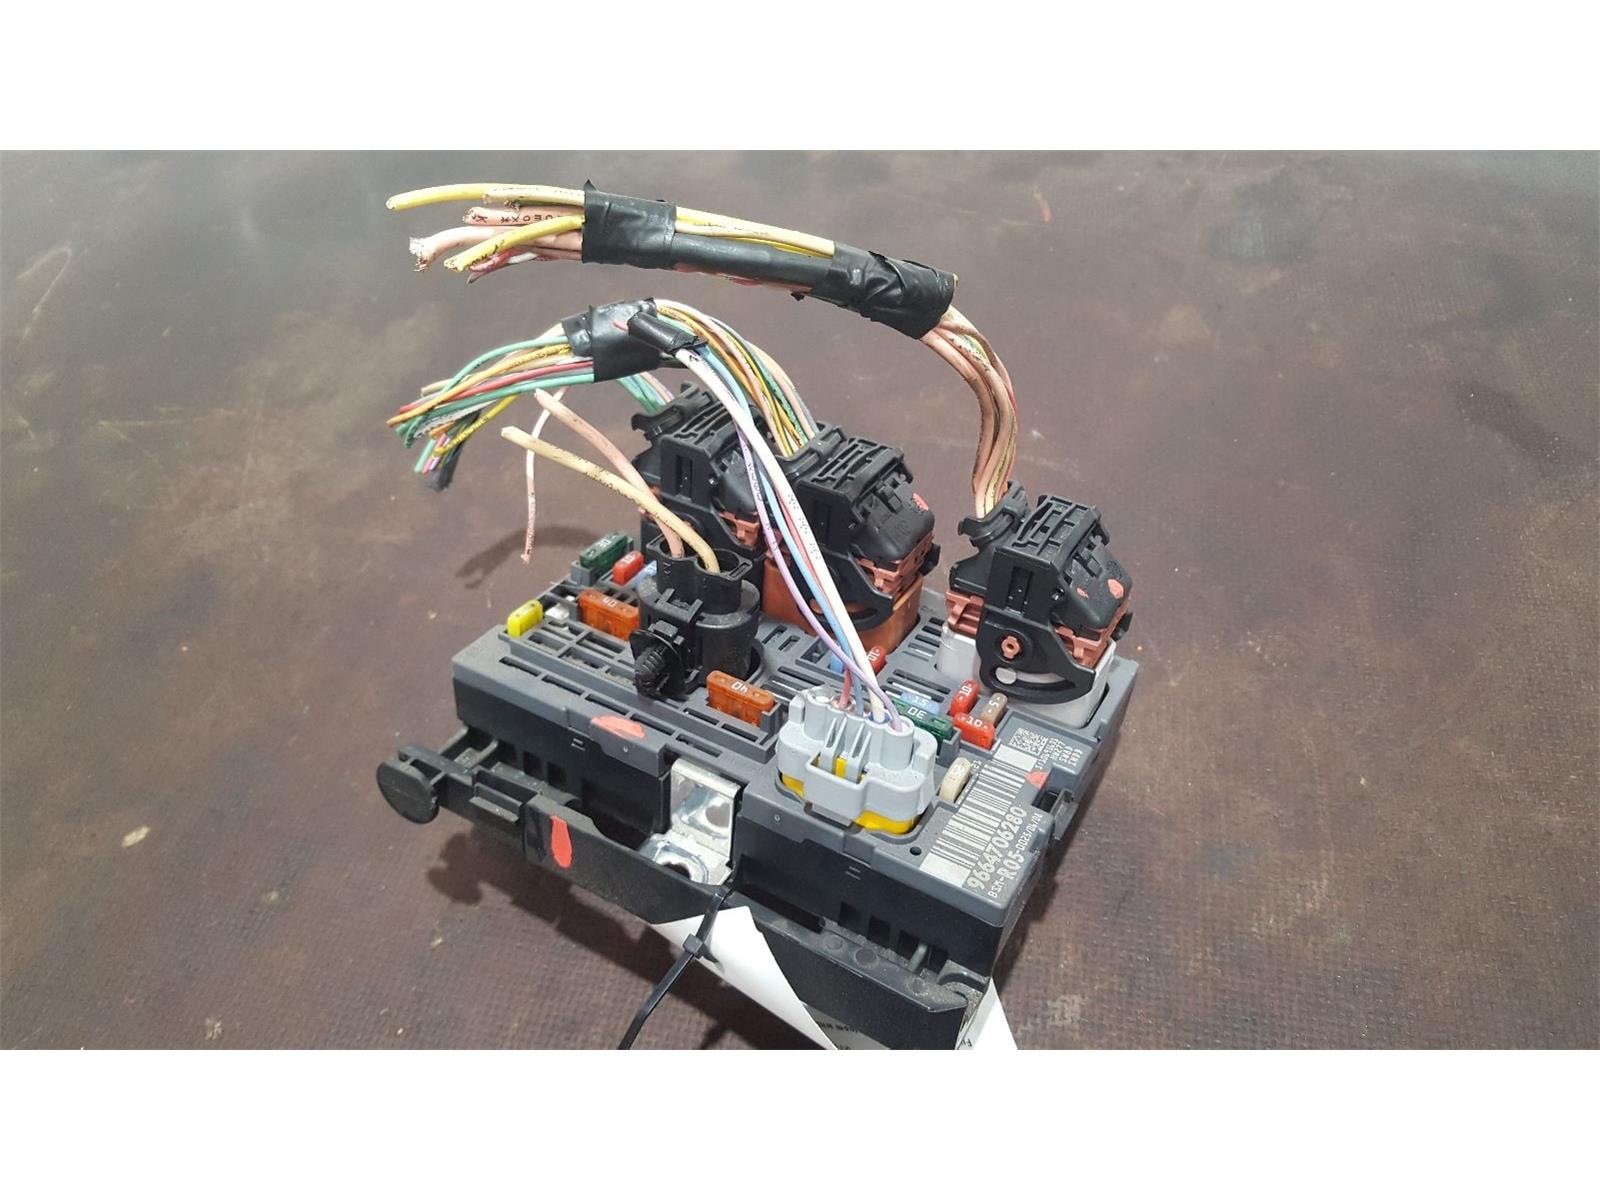 Peugeot 308 2008 To 2010 Sport Hdi Fuse Box Used And Spare Parts At Car Bsi Bmi Bcm Body Control Unit 9664706280